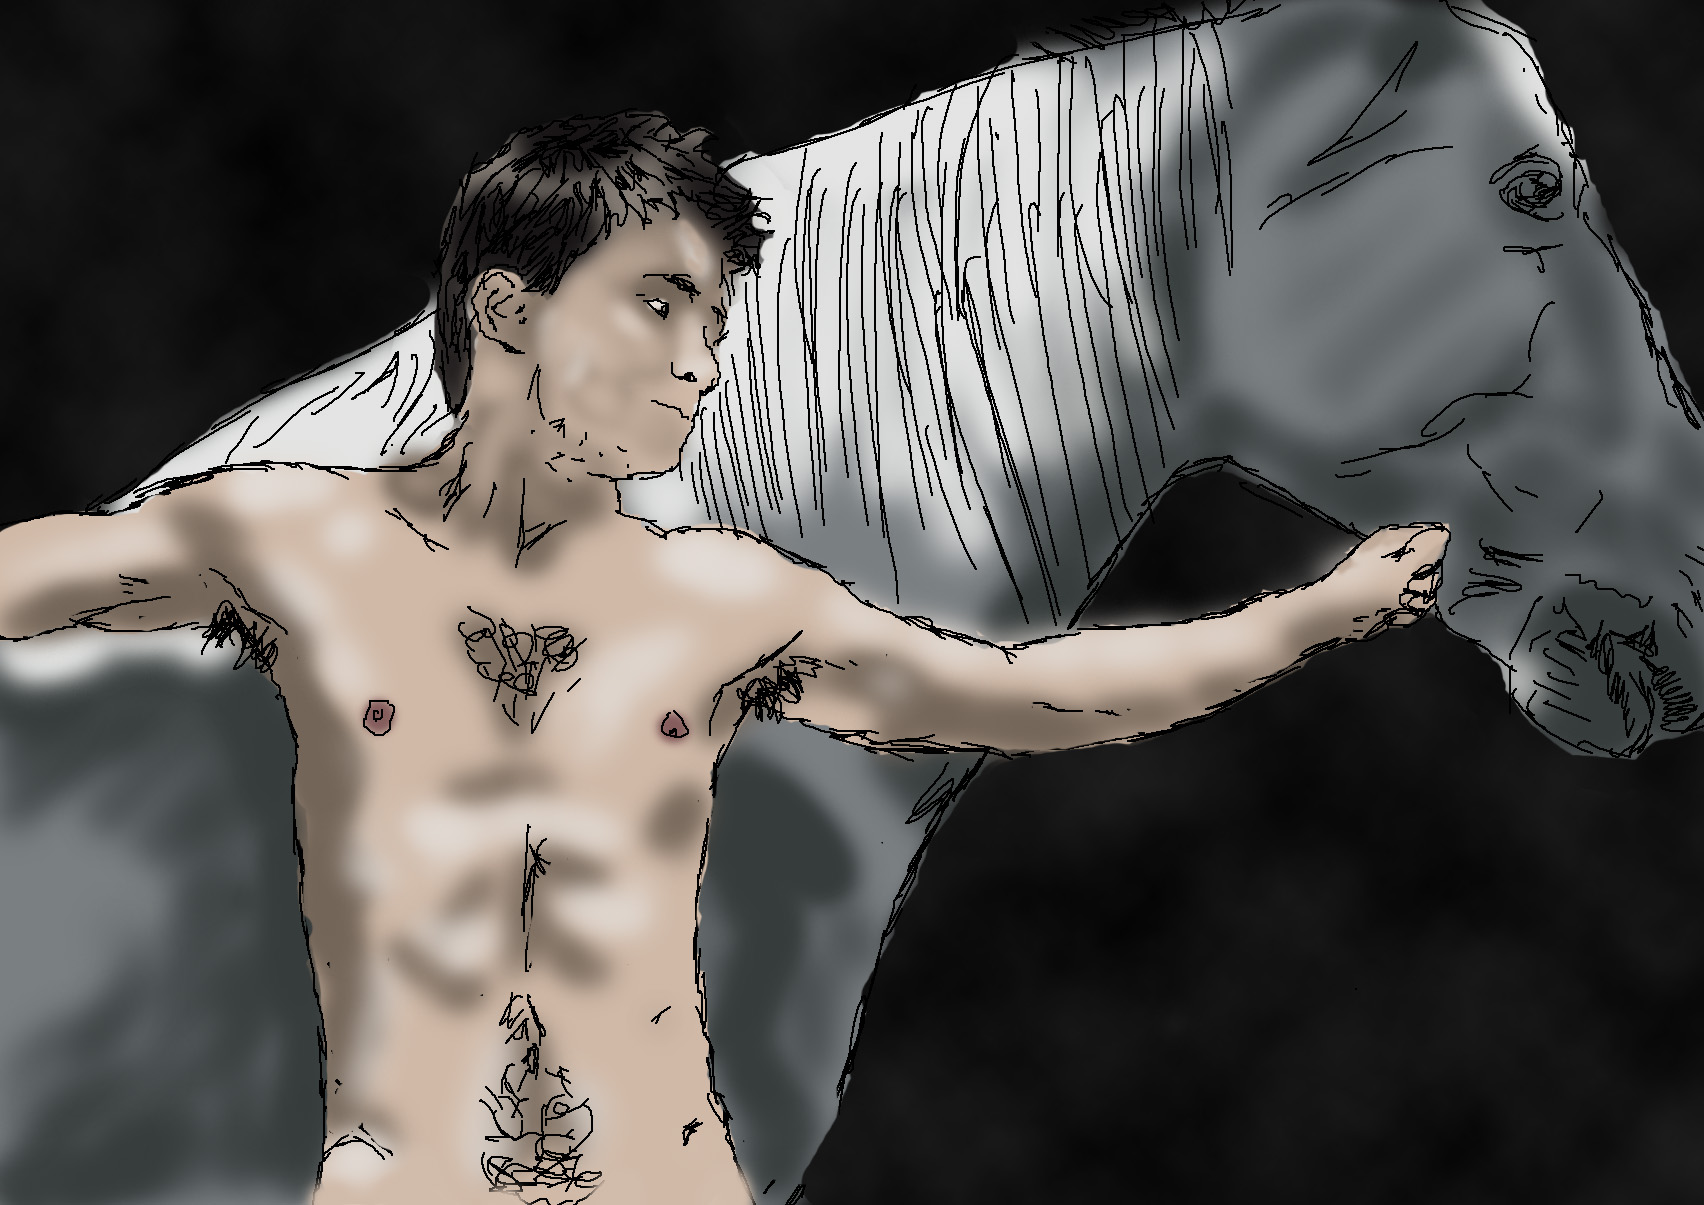 Harry Potter Nude by SFWGoblin Consumer Location is Key; Lady Gaga lends support to O.C. gay teen ...